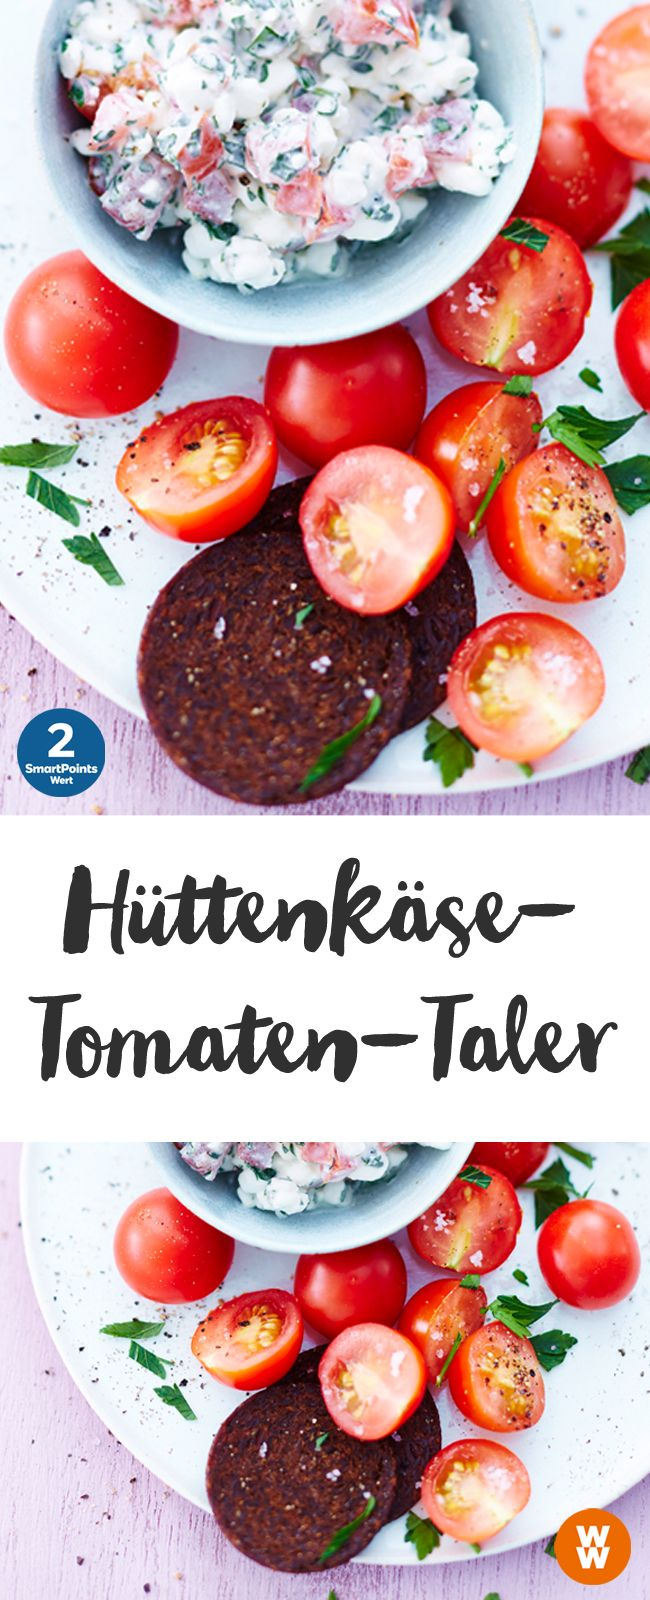 Hüttenkäse-Tomaten-Taler | 1 Portion/2 SmartPoints, Weight Watchers, einfach und schnell fertig in 5 min.